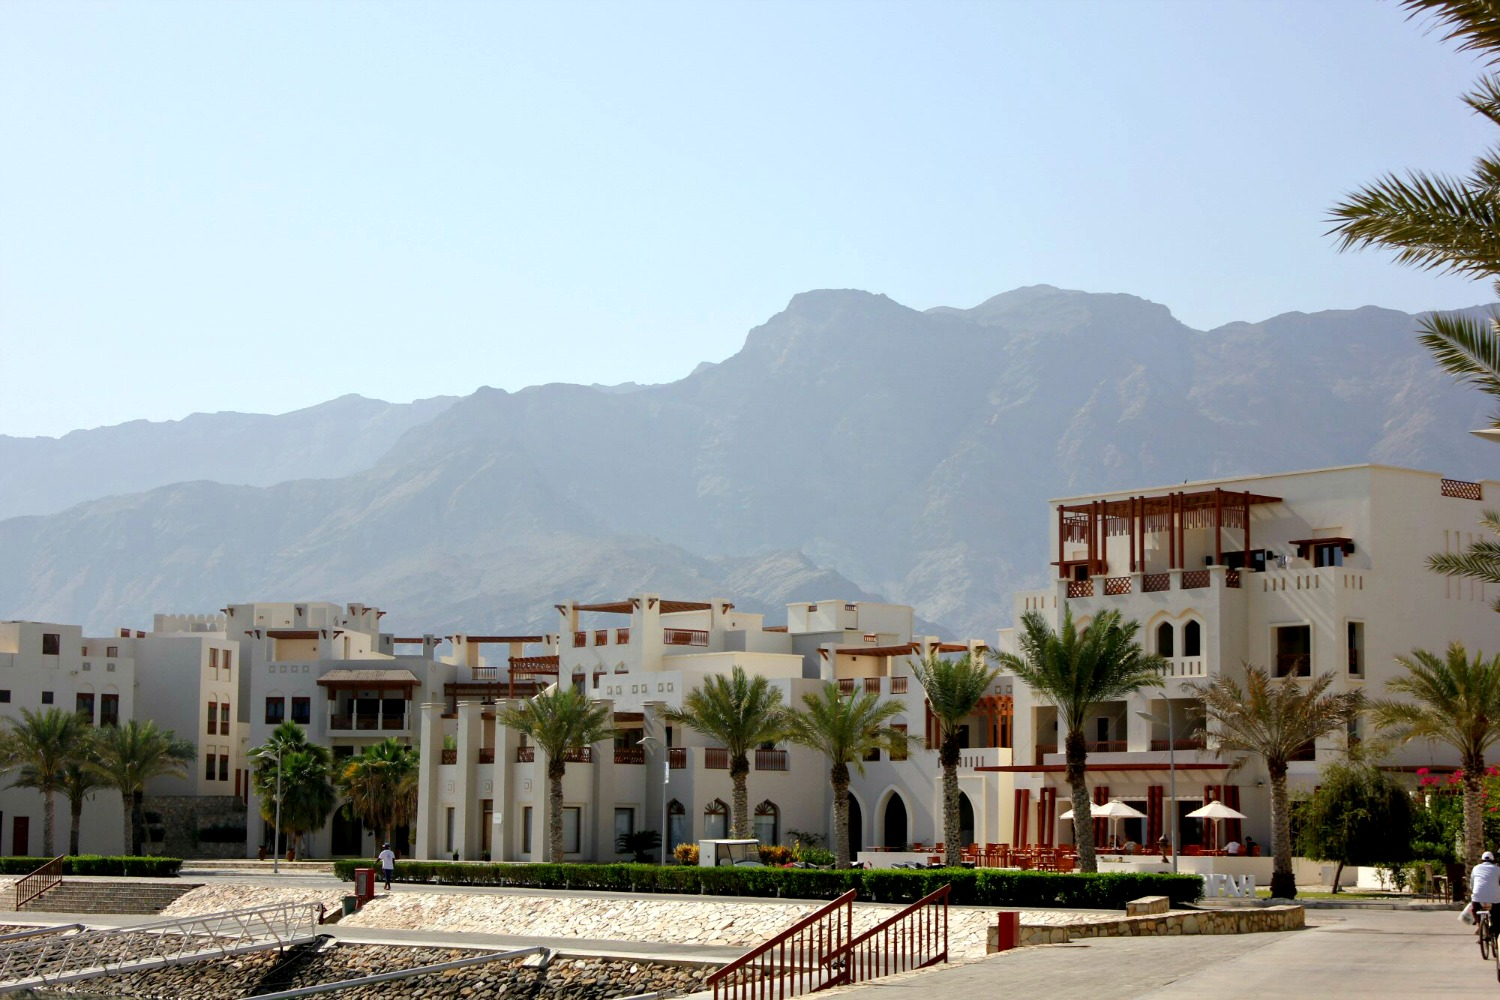 The white buildings at the marina of As Sifa with the mountains behind near Muscat, Oman - my nine reasons to visit Oman with kids